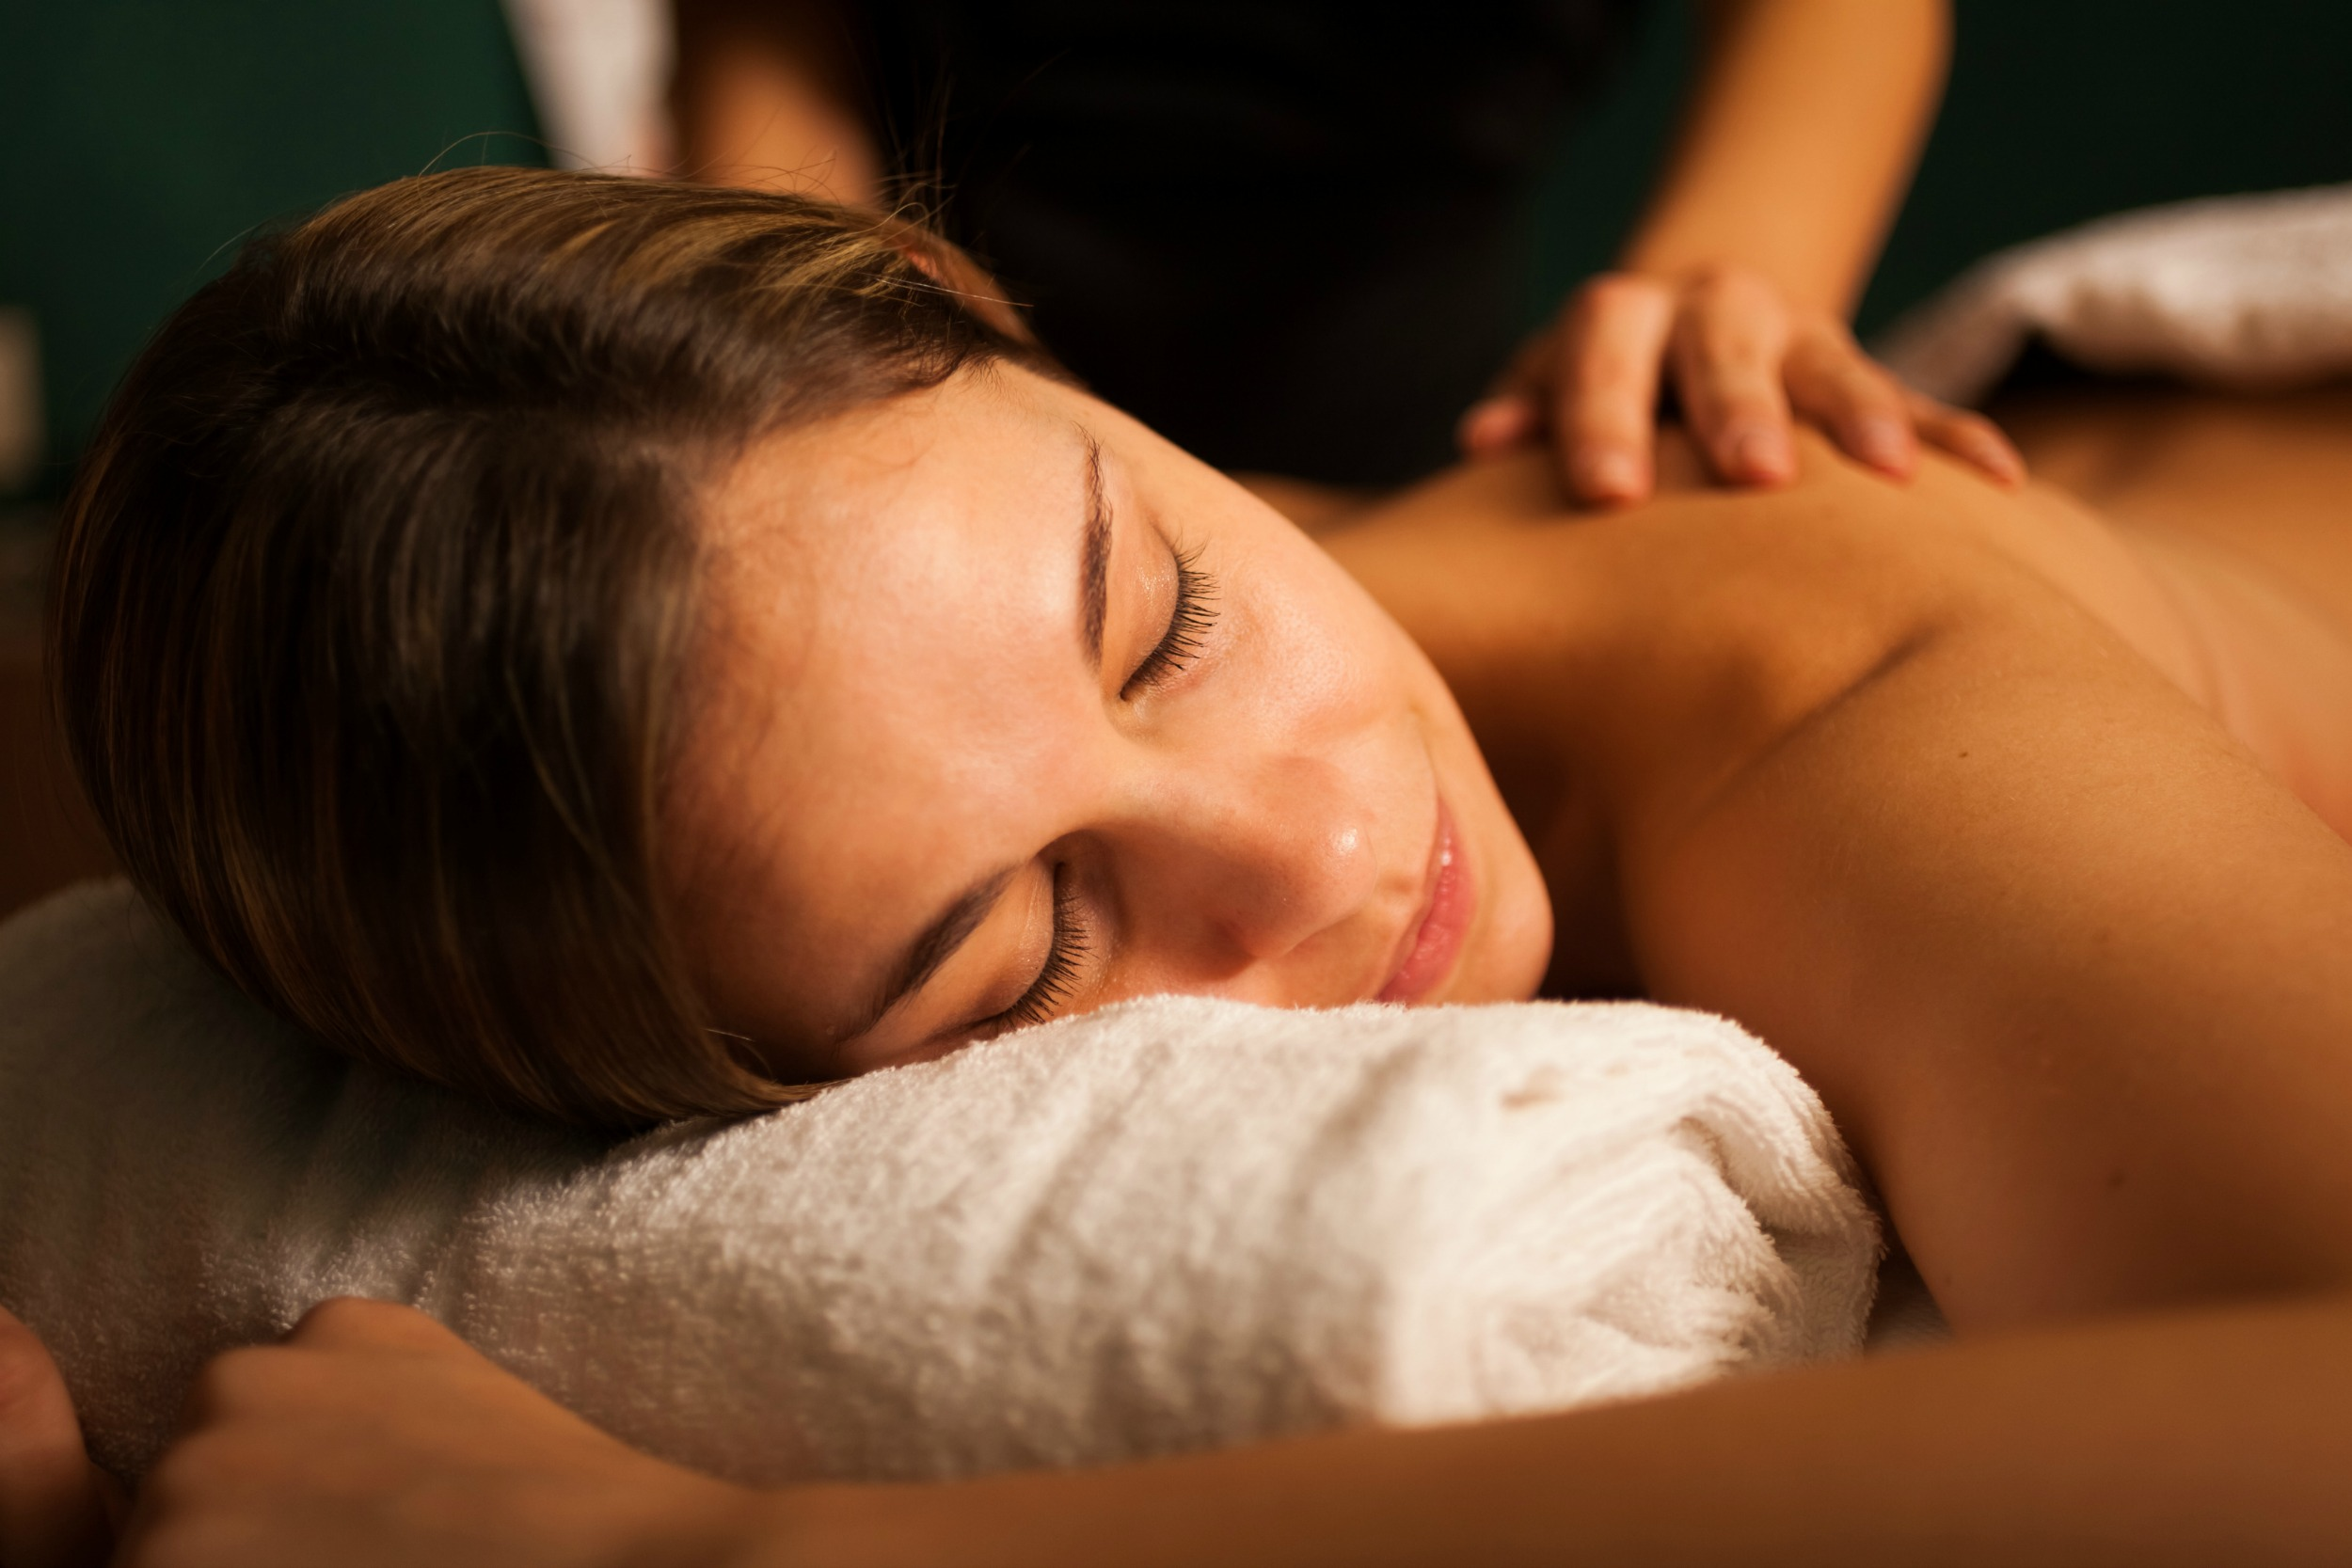 Resized Woman Massage shutterstock_259495484